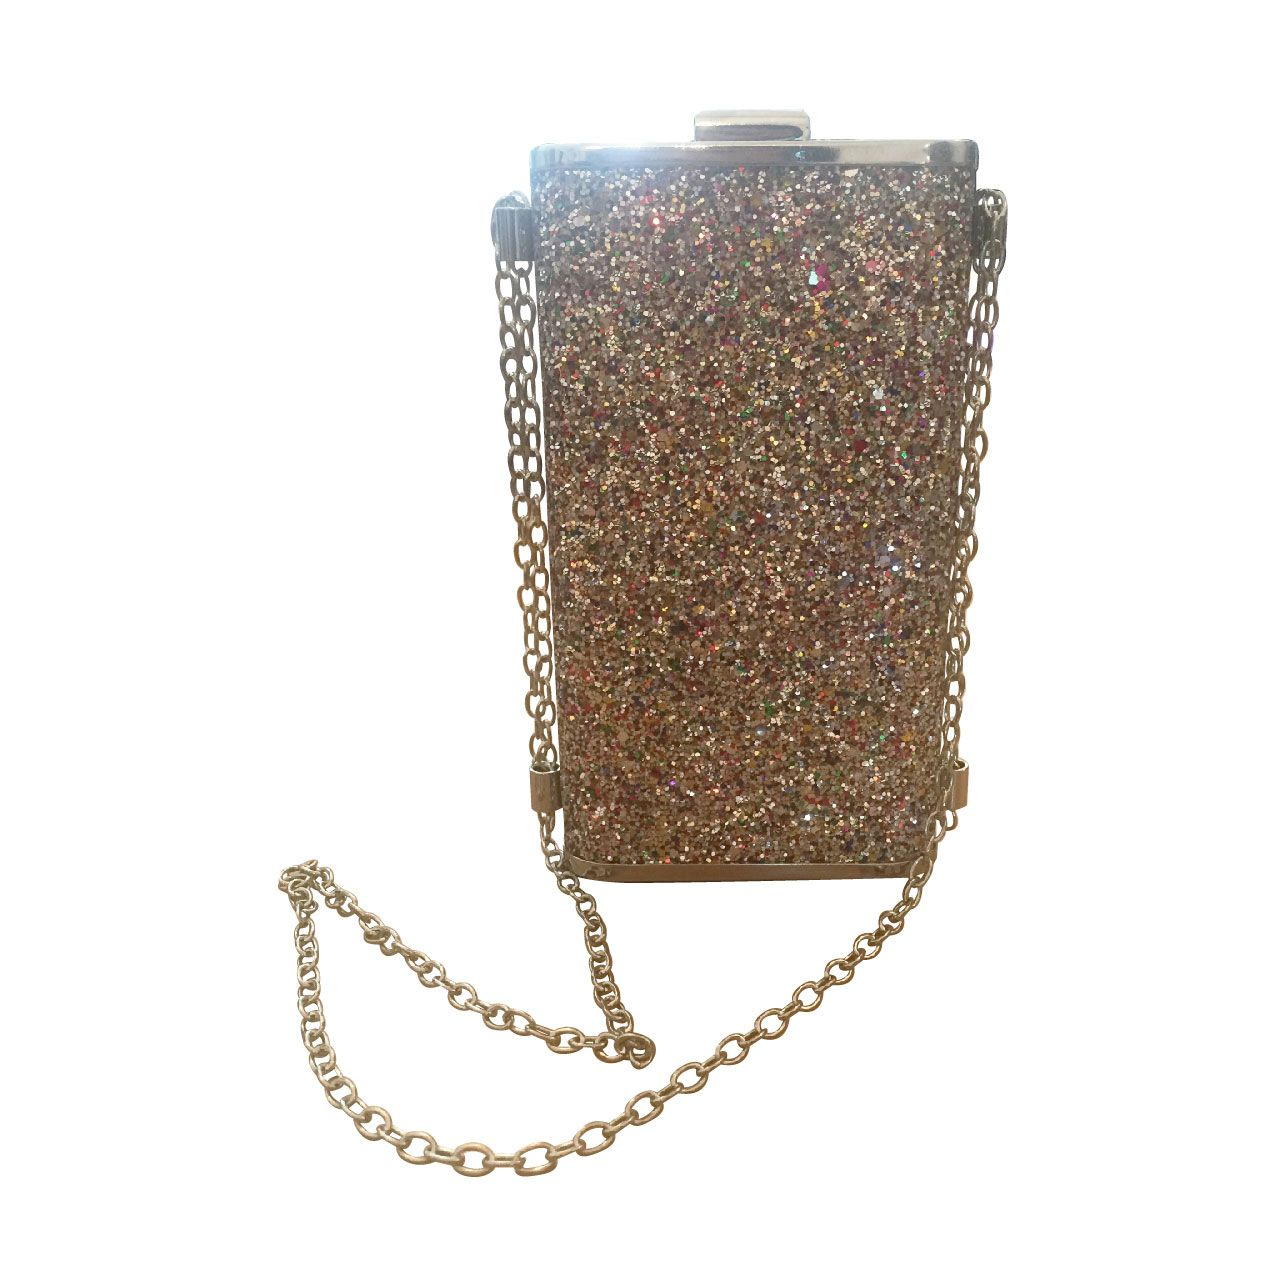 587fc71f95e1 Gold and Silver Sequinned Clutch Bag by Beth Jordan